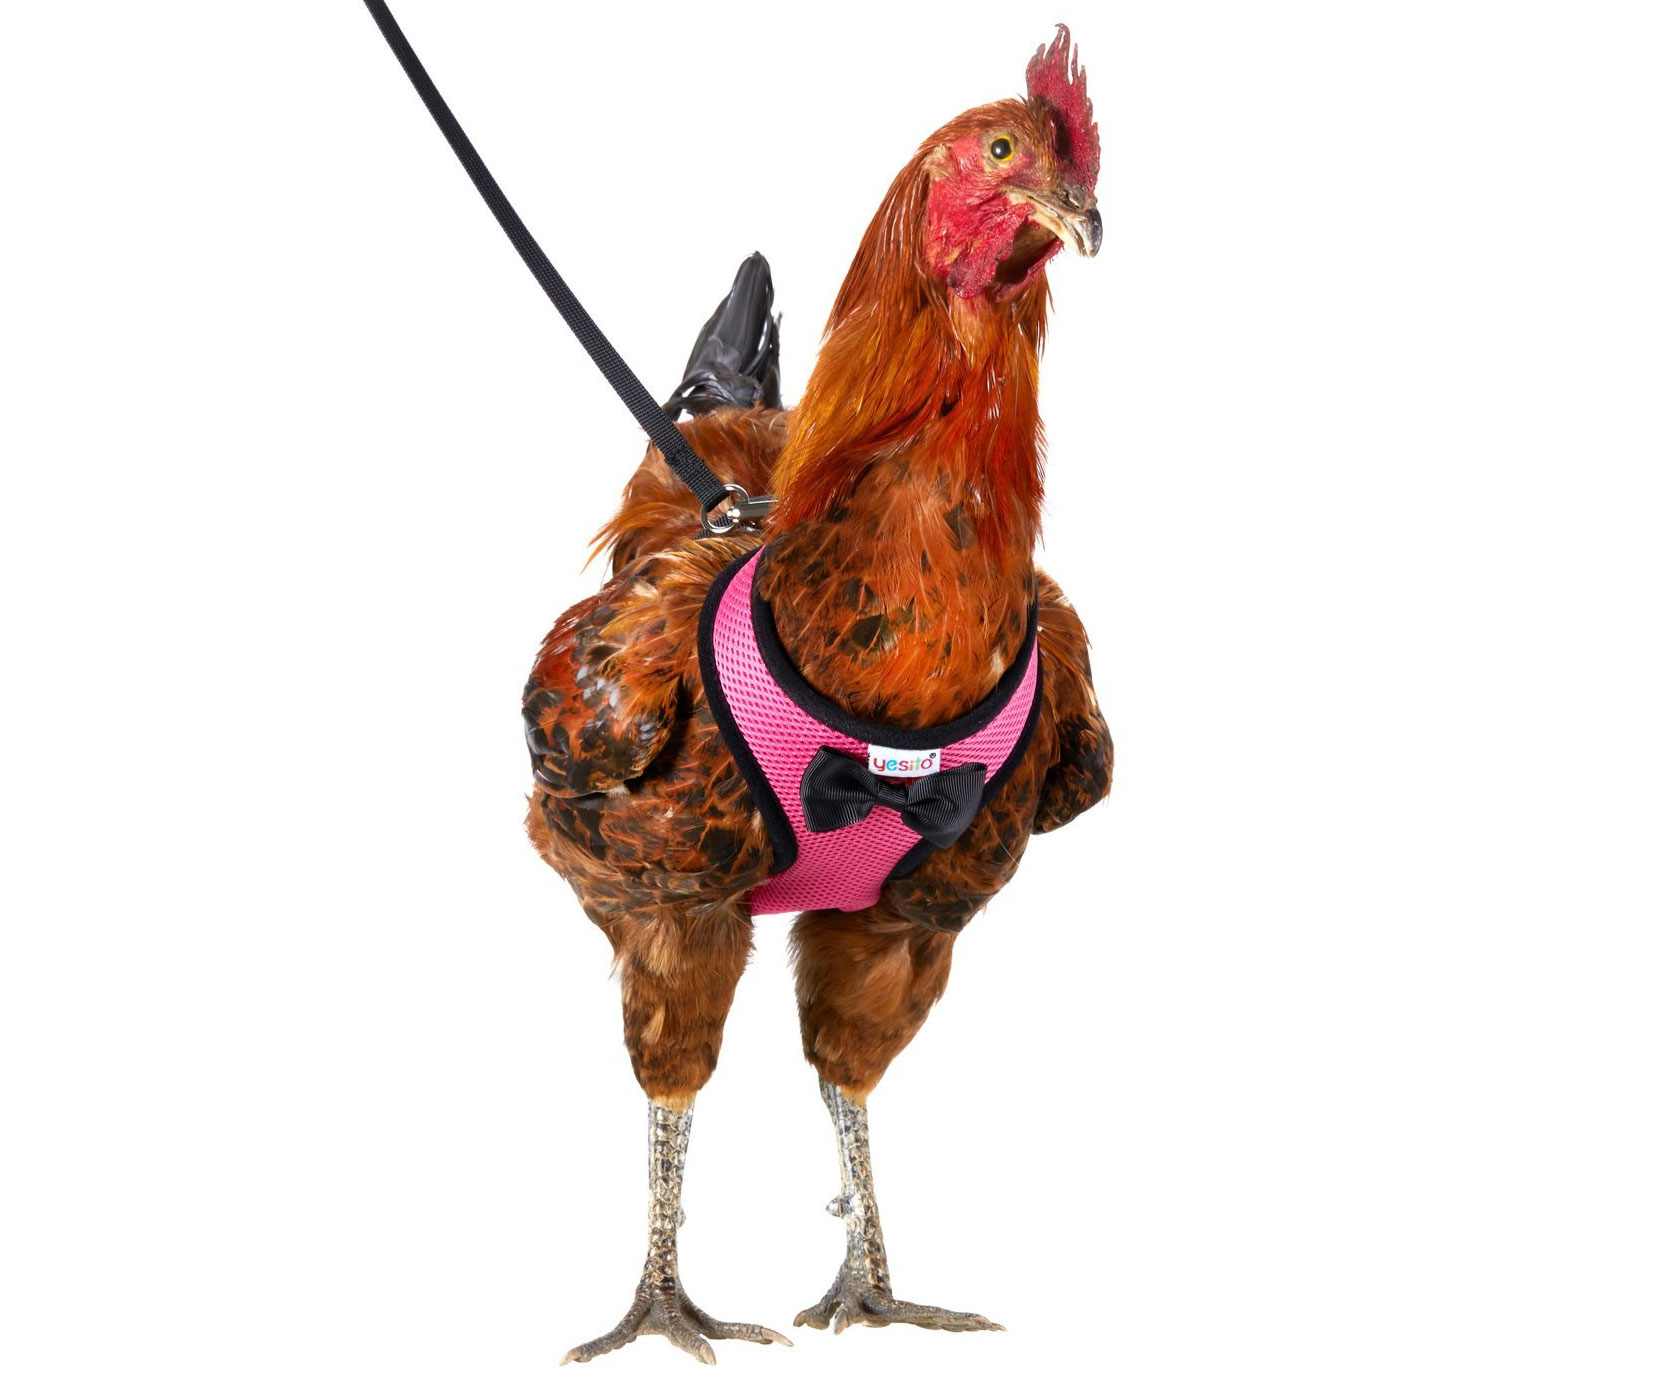 Chicken Harness And Leash - coolthings.us